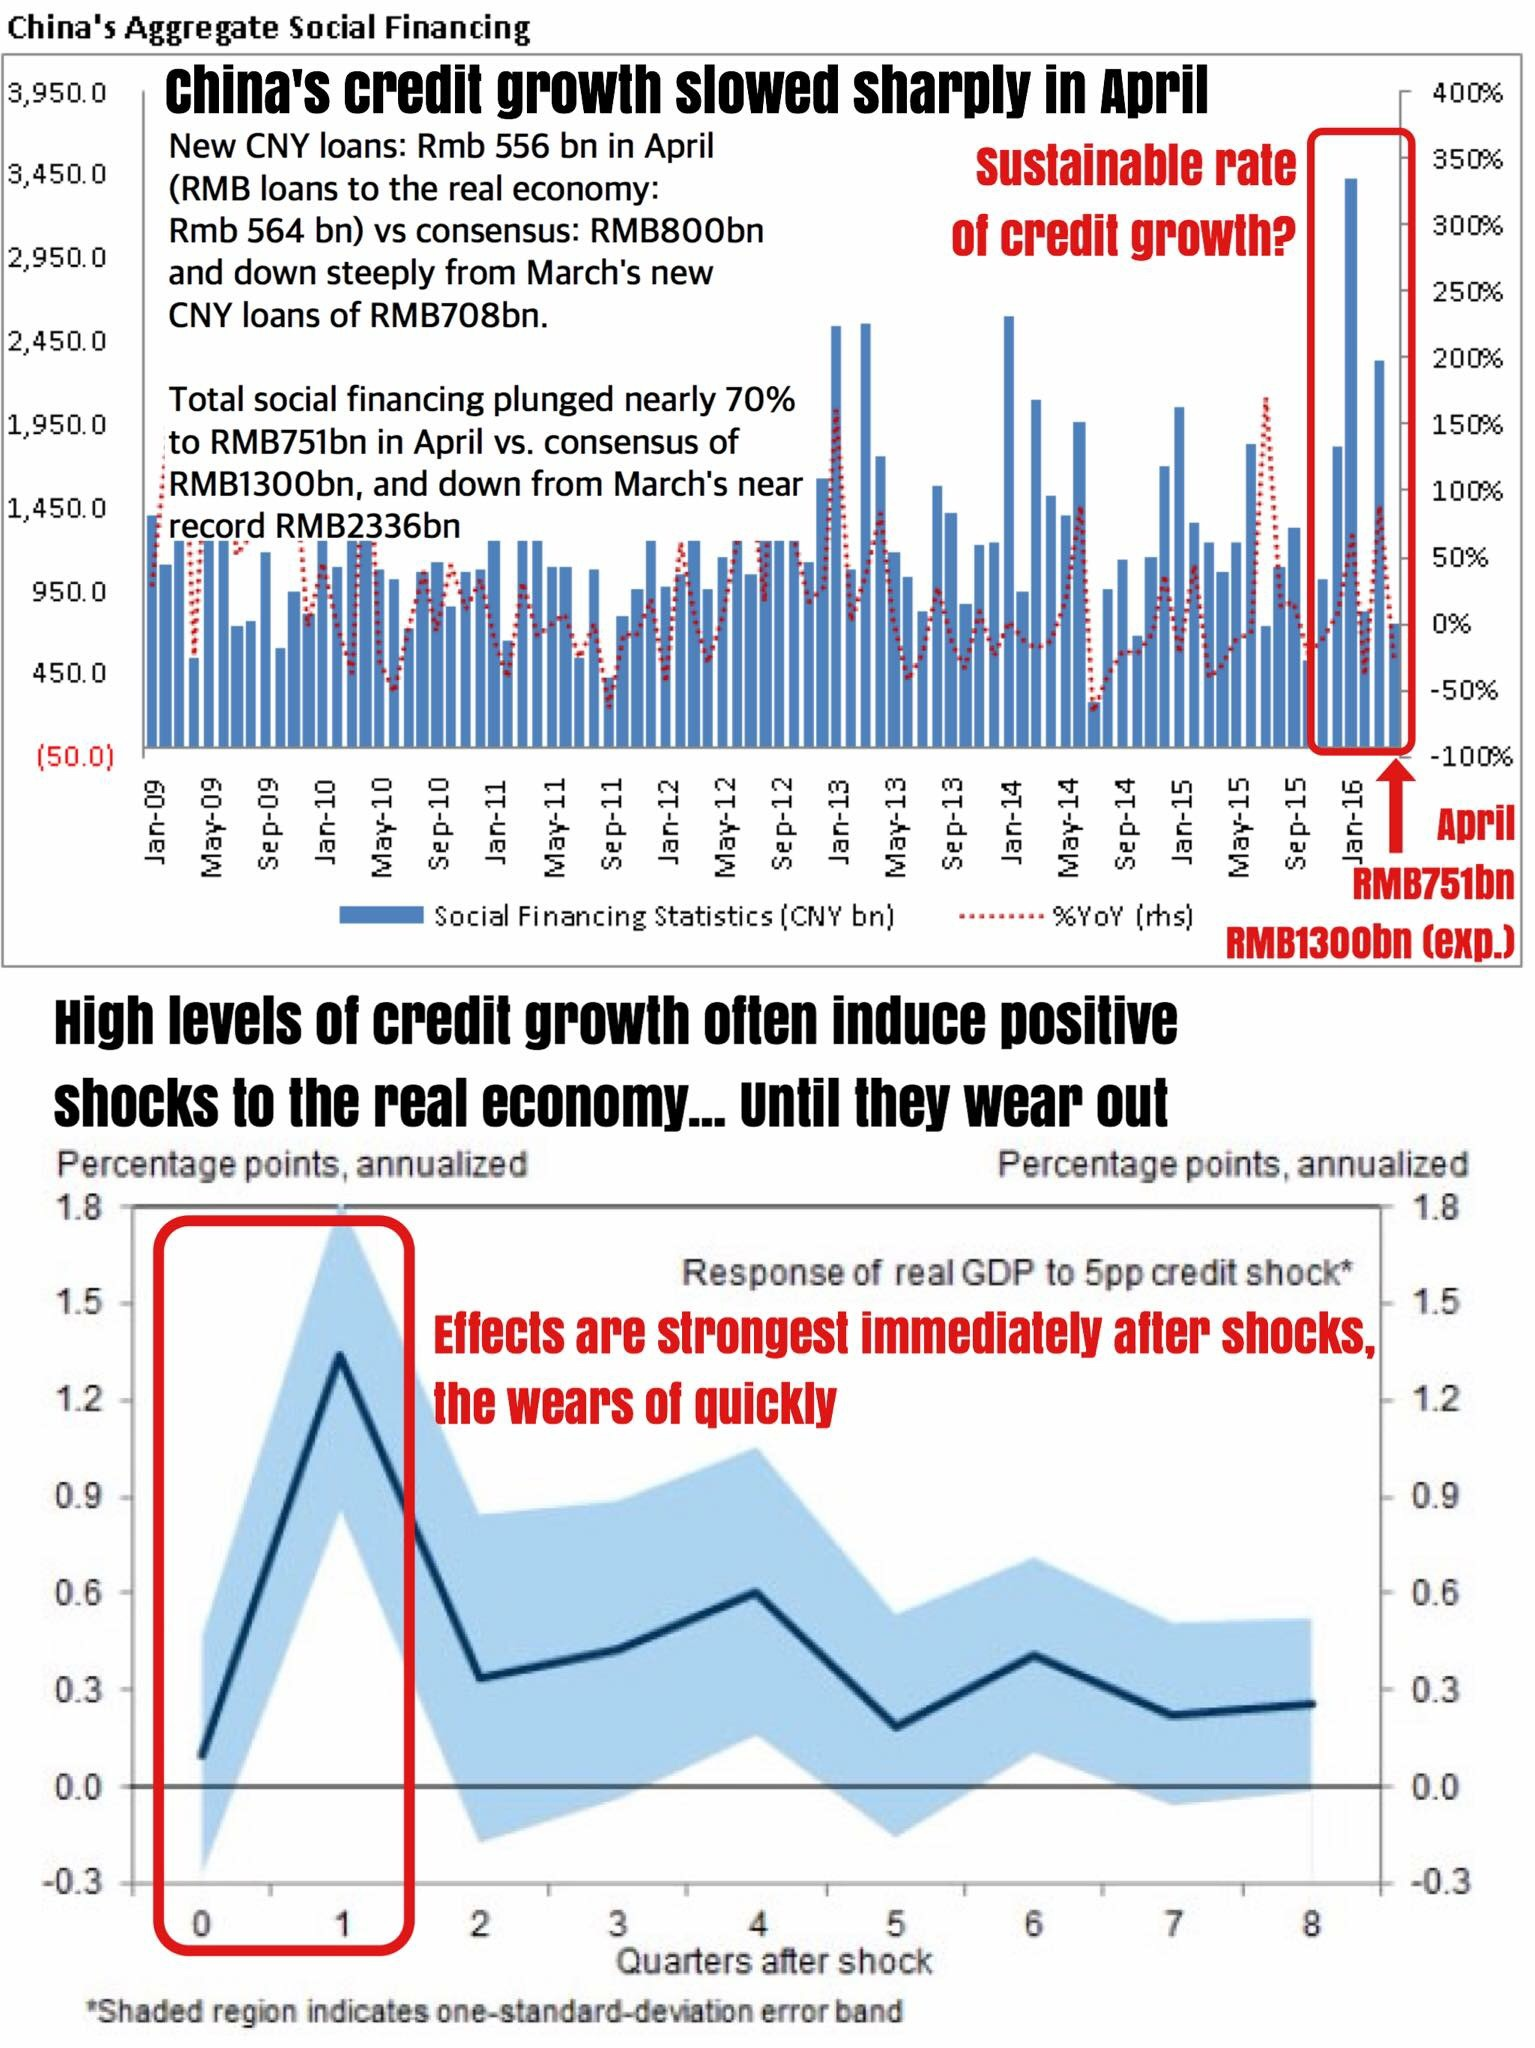 """""""China's credit growth (new CNY loans & social financing) slowed very sharply in April from March's blistering increase. Why does this matter more than anything else? Because if you even bothered to look at why the world's second largest economy has been able to """"growth"""" at such officially-reported (or claimed) rates, it's been mostly due to the breakneck speed of which credit has been expanding. Credit fueled growth, that's what it is.    Earlier Friday, China reported that total social financing (TSF) for April fell 70% from March, coming in at RMB751bn (still very high) vs. consensus expectations of RMB1.3trn. New CNY loan creation also slowed sharply in April to RMB556bn vs. consensus expectations of RMB809bn.    To place things in context of how insanely volatile the credit growth situation in China really is, January saw TSF increase by a whopping 63% YoY. April saw TSF fall by more than 15%. That's a delta of nearly 80% in 3 months. Go figure.    Also, M2 growth slowed in April and money velocity fell, indicating that consumption has probably also fell.    Watch this key metric each month because we strongly believe it's what holds the Chinese economy together. Should we see consistent drops in credit growth, you know almost certainly that the world's second largest economy and largest producer of exports is in deep water.    From Goldman:    """"Slower credit growth in April was likely the partial result of tighter liquidity conditions in the interbank market. Administrative controls might have played some role as well. Higher yields and credit spread may also contributed given the decrease in corporate bond net issuance under TSF. There were also some crowding out effects of very large amount of local government bond issuance which were mostly bought by banks.    Fiscal deposit change was a major drag on M2 growth. Fiscal revenue growth was as high as 14.4%, mainly because of attempts by the government to collect the last month's operation tax before they are """